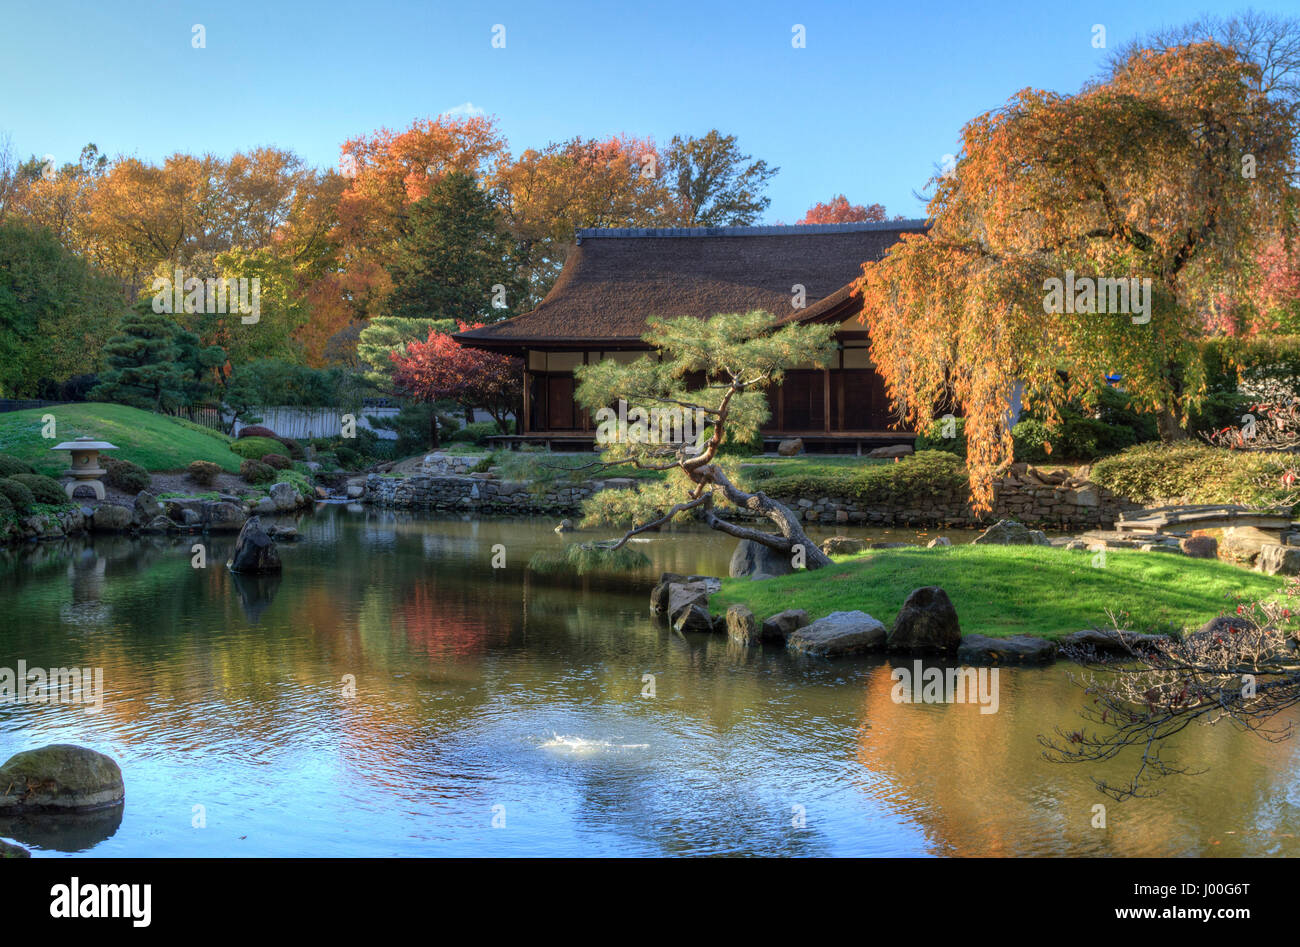 Delicieux Shofuso Japanese Garden In Autumn, Fairmount Park, Philadelphia,  Pennsylvania   Stock Image